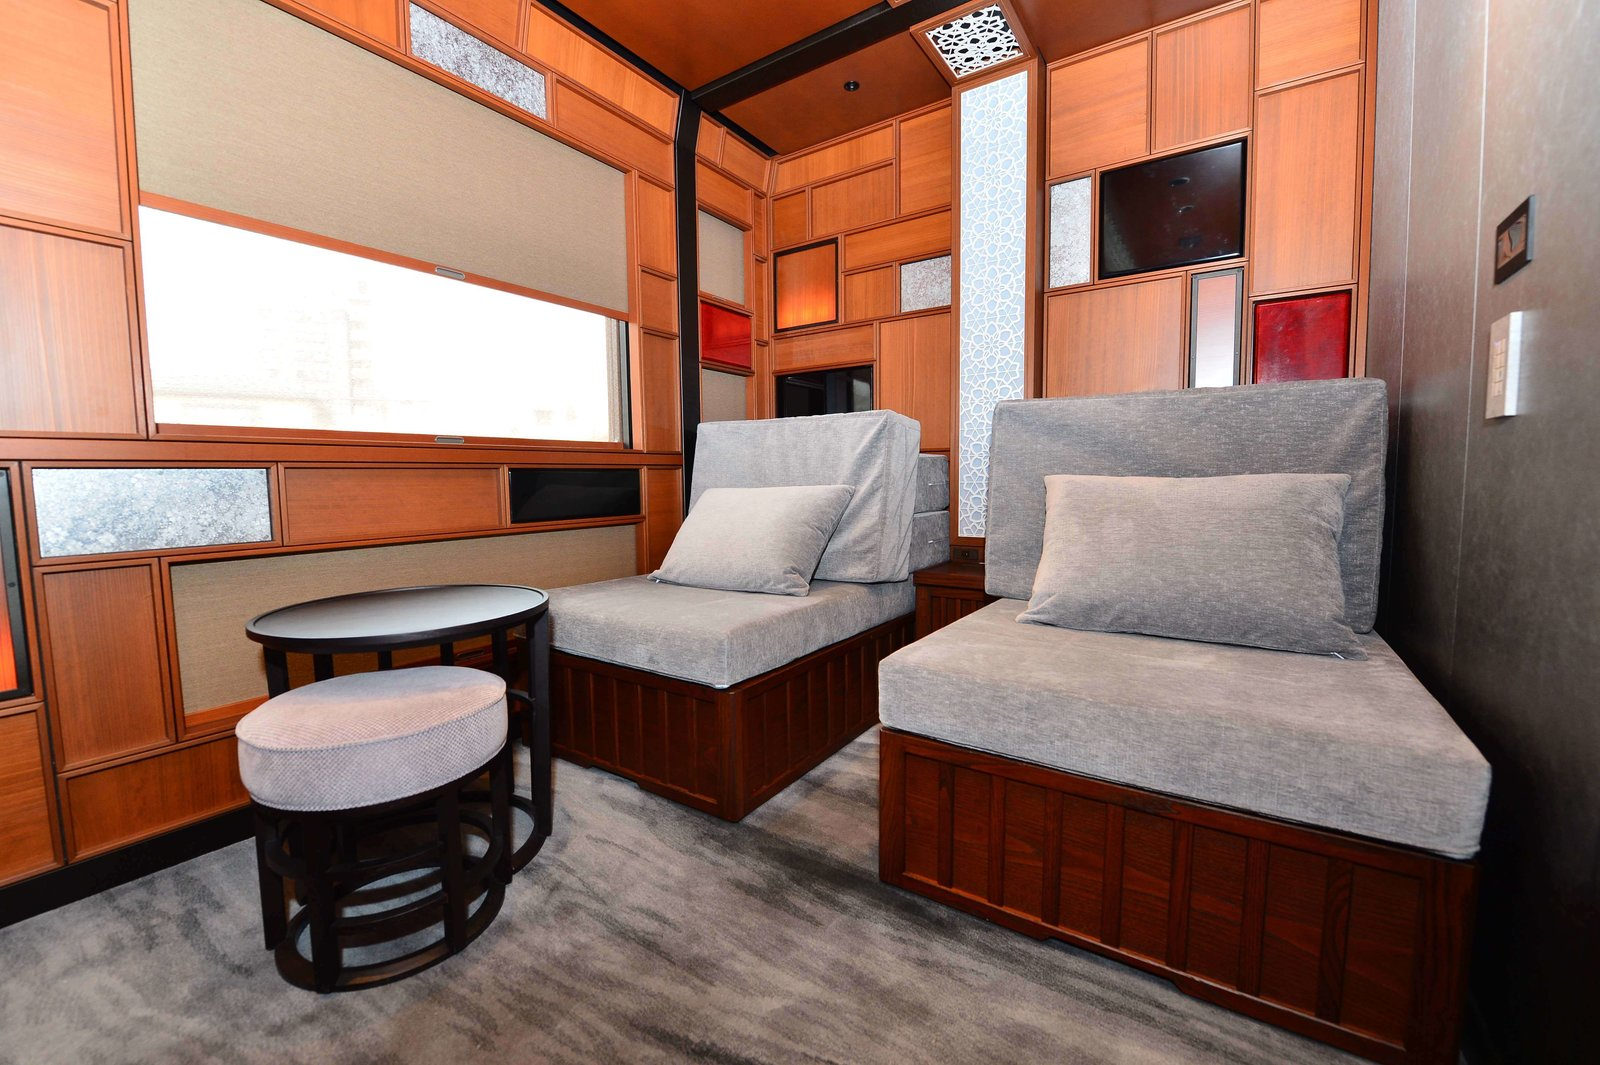 Living Room, Chair, Ottomans, and End Tables  Photo 12 of 14 in Journey Through Eastern Japan on a Luxury Sleeper Train